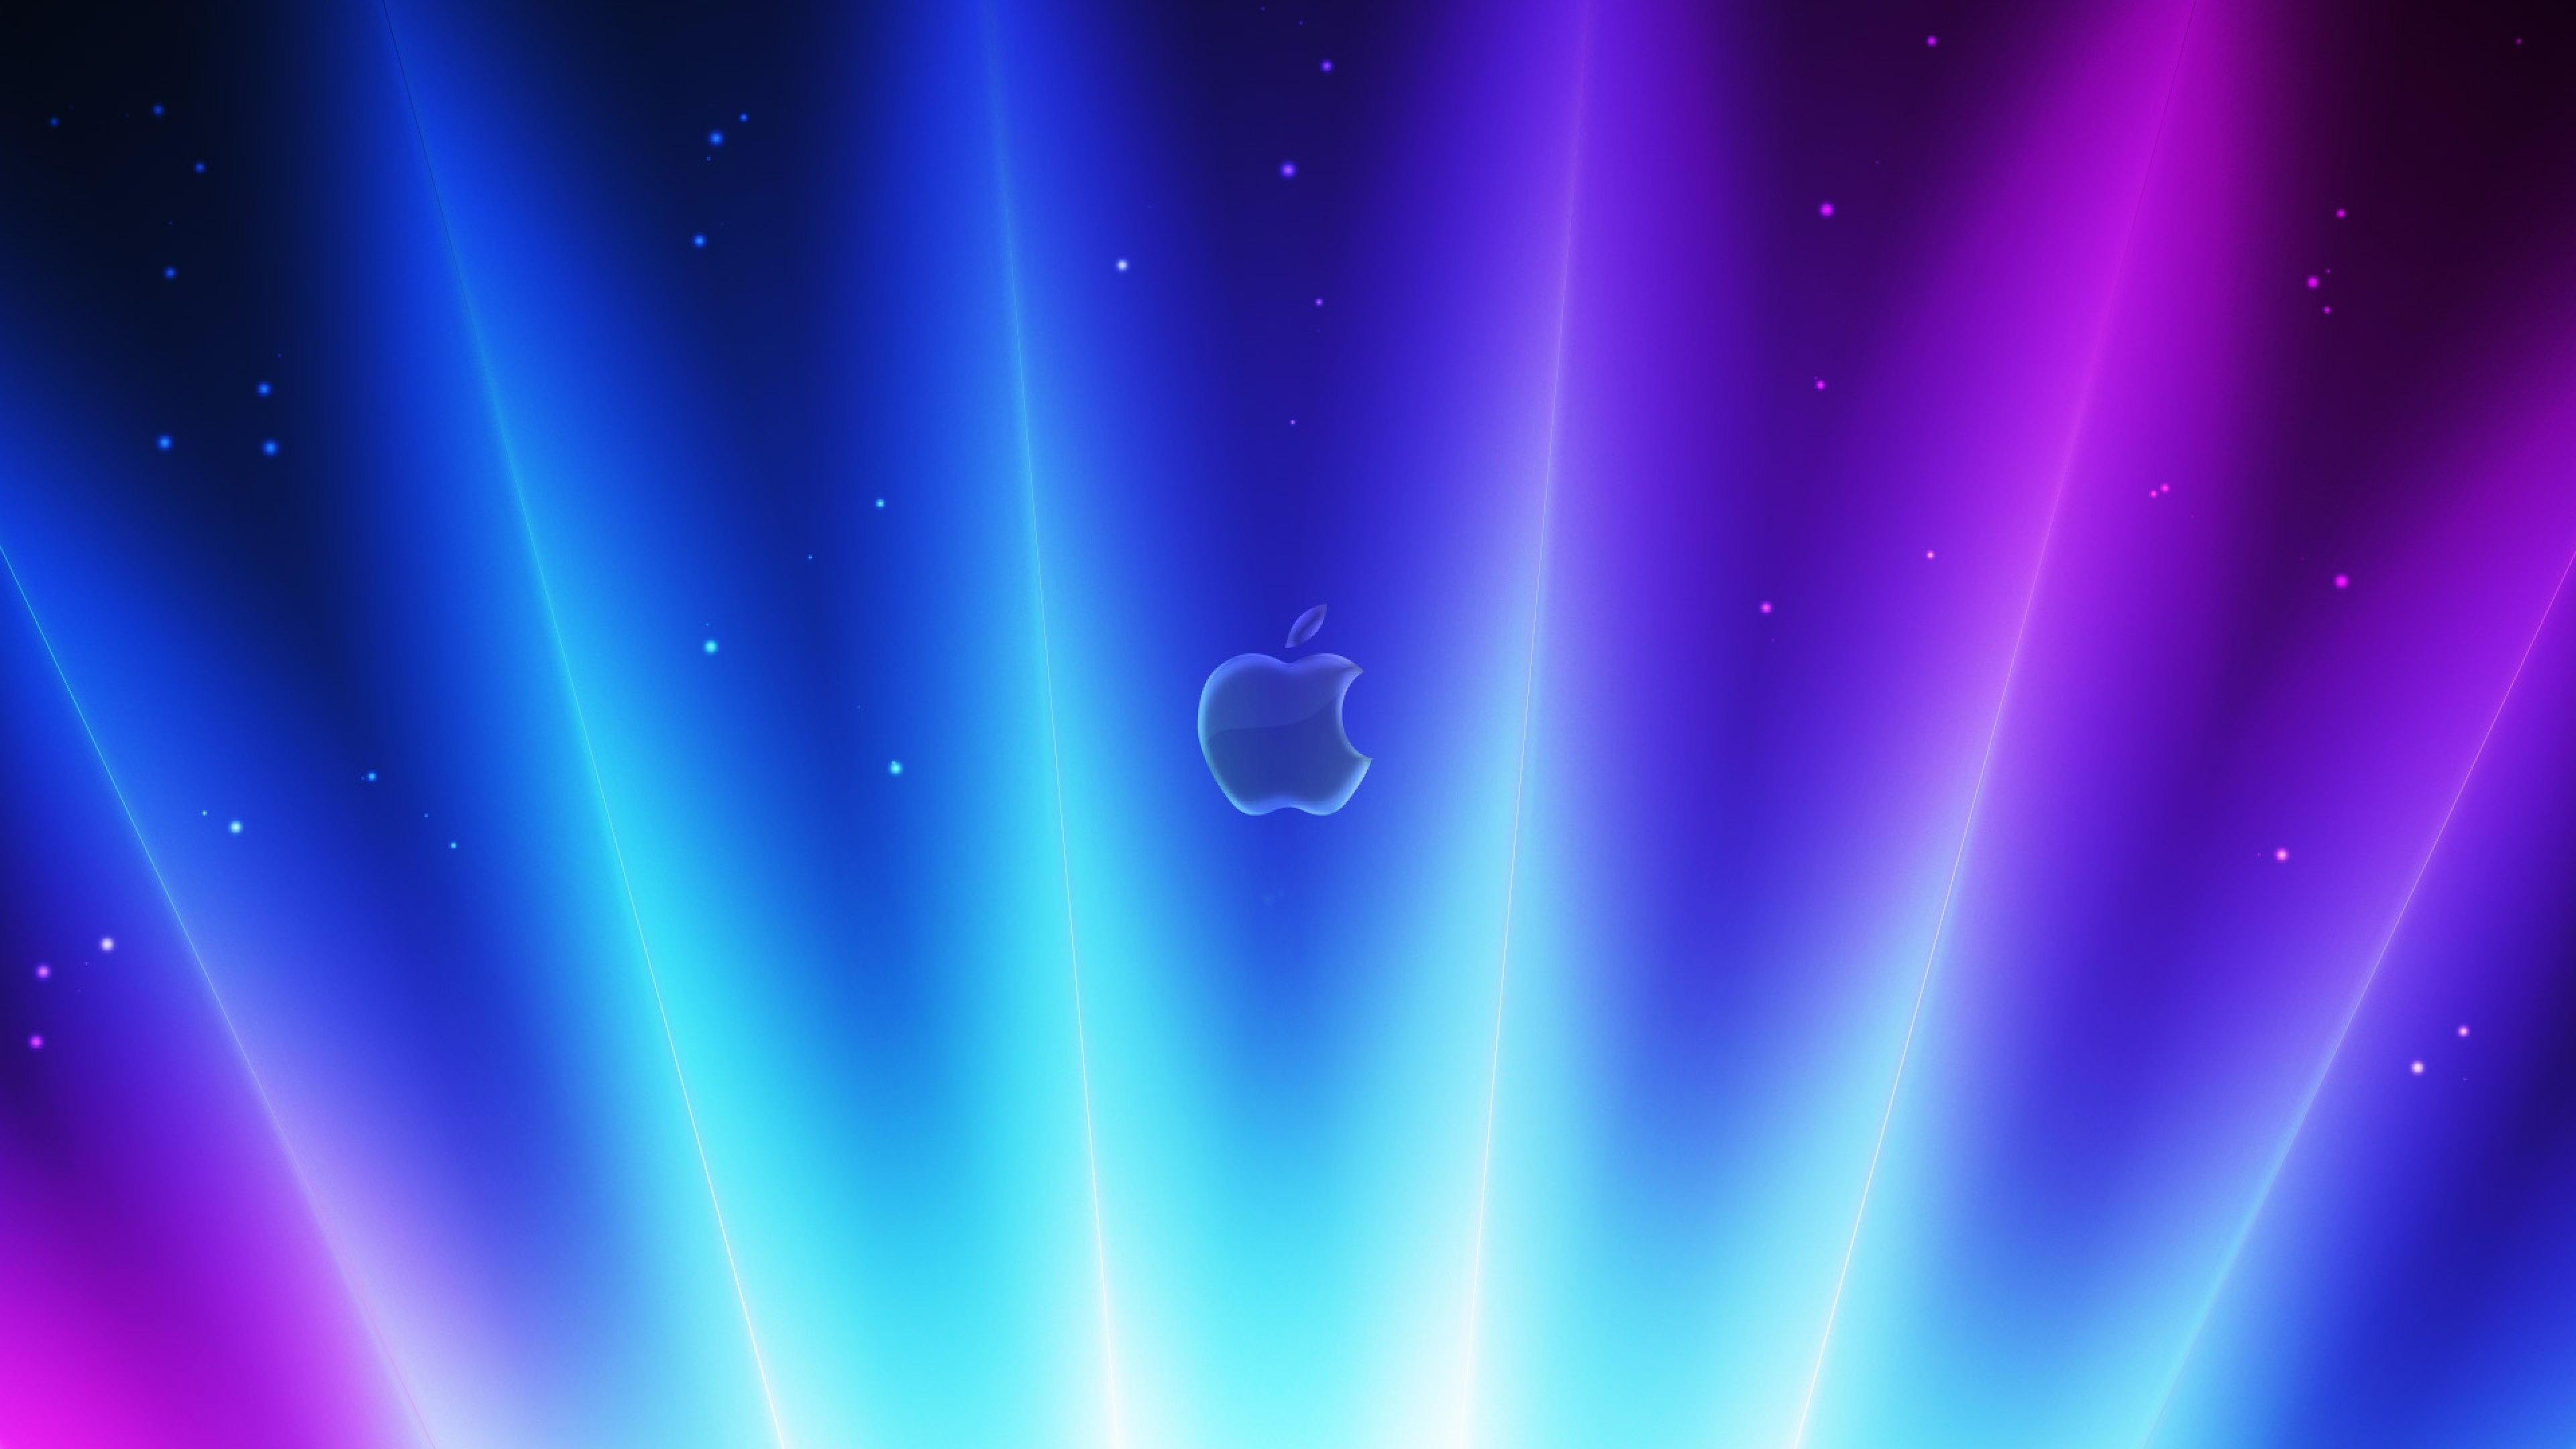 Wallpaper 3840x2160 app storm apple mac shimmer lilac blue 4K 3840x2160